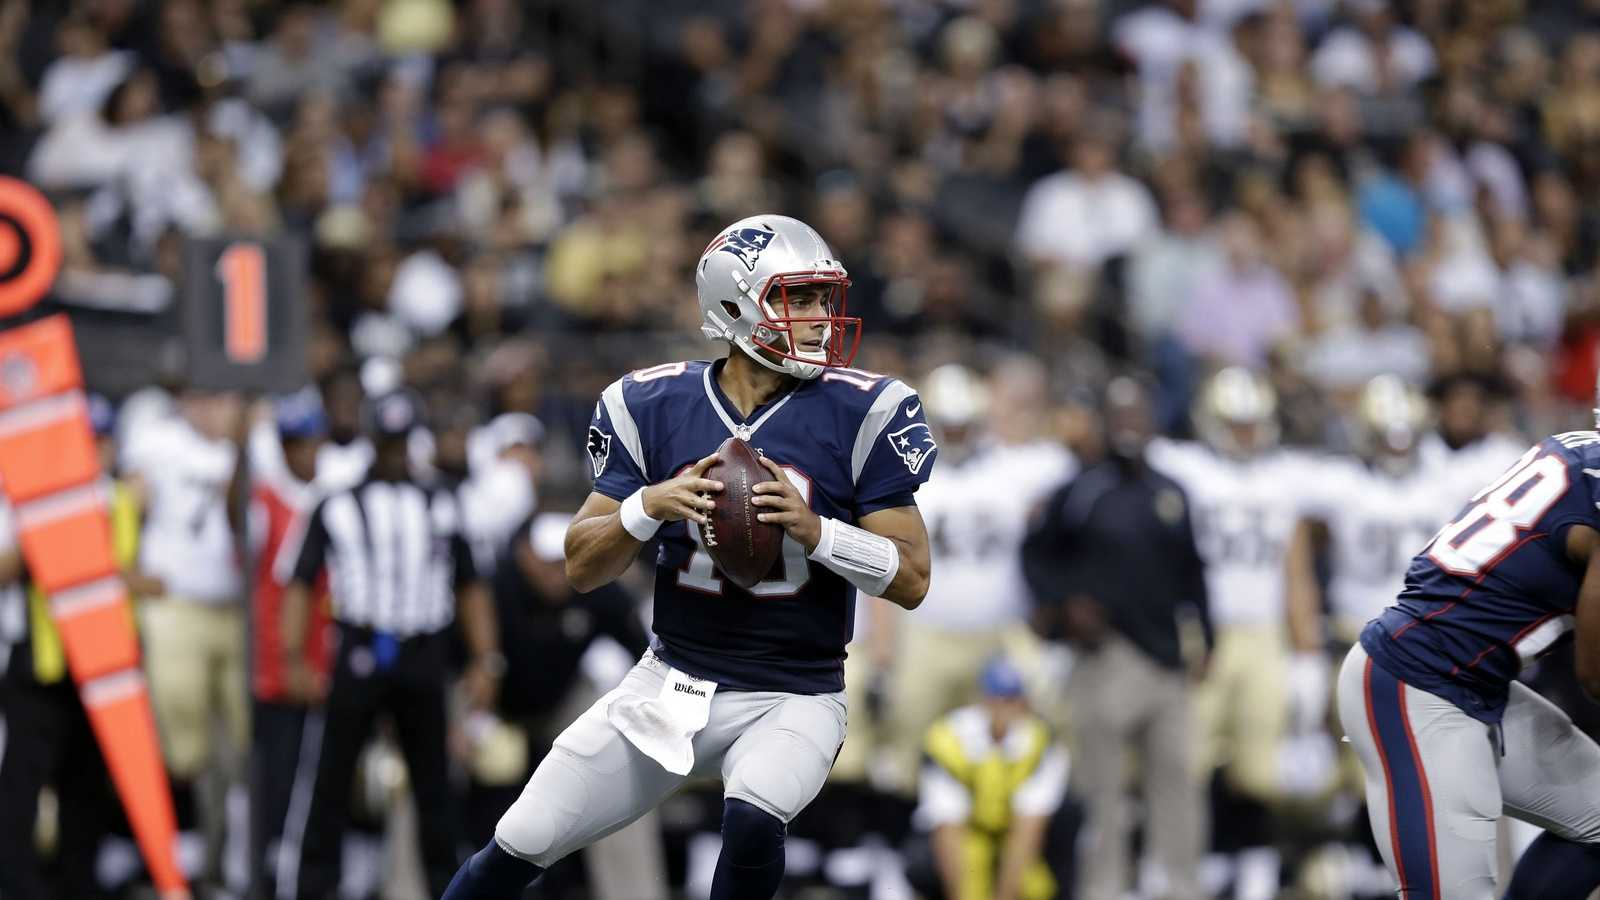 New England Patriots quarterback Jimmy Garoppolo (10) drops back to pass in the second half of an NFL football game against the New Orleans Saints in New Orleans, Saturday, Aug. 22, 2015.